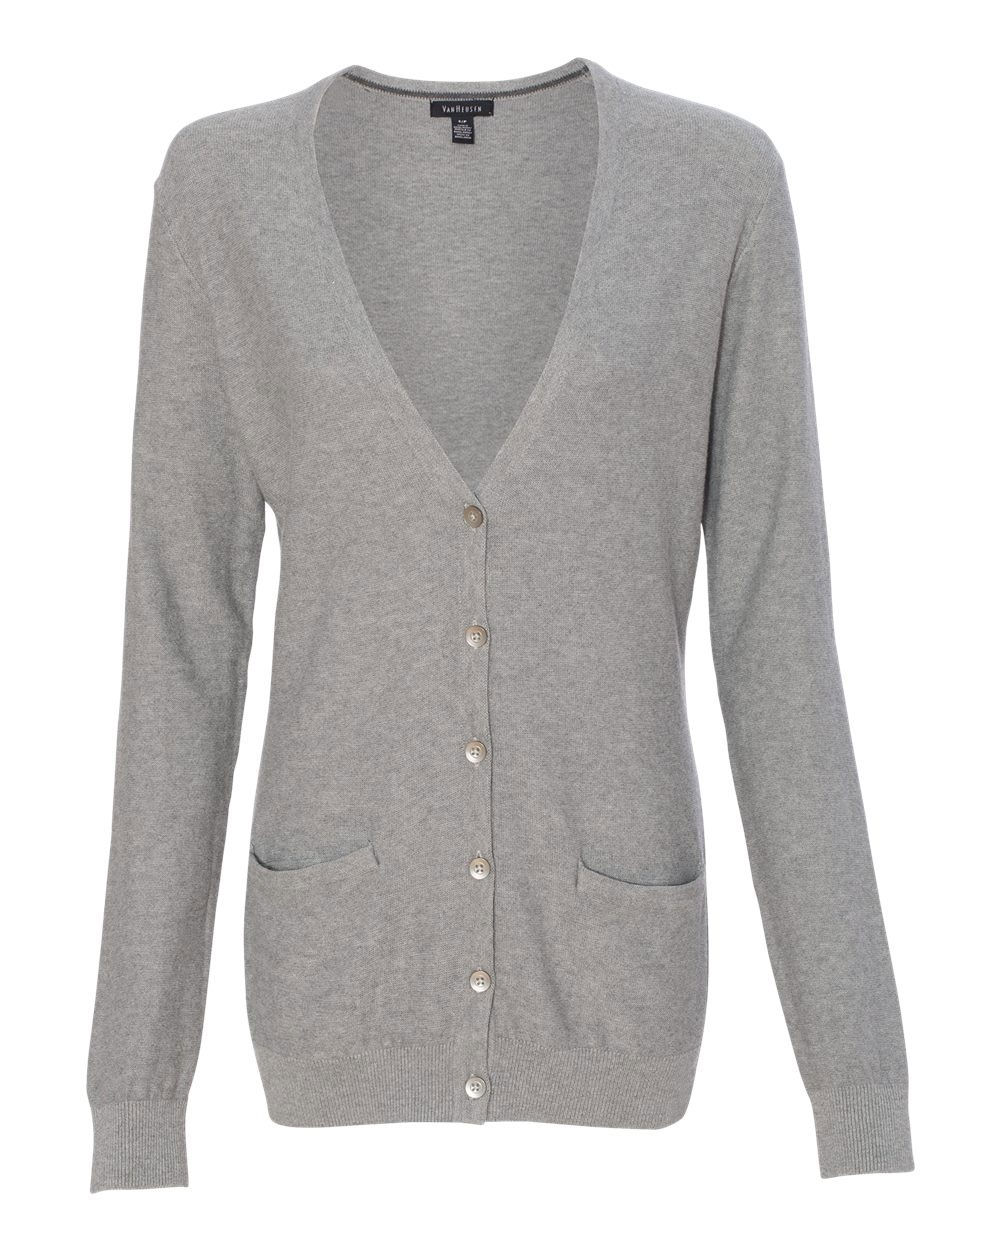 Van Heusen - Womens Cardigan Sweater